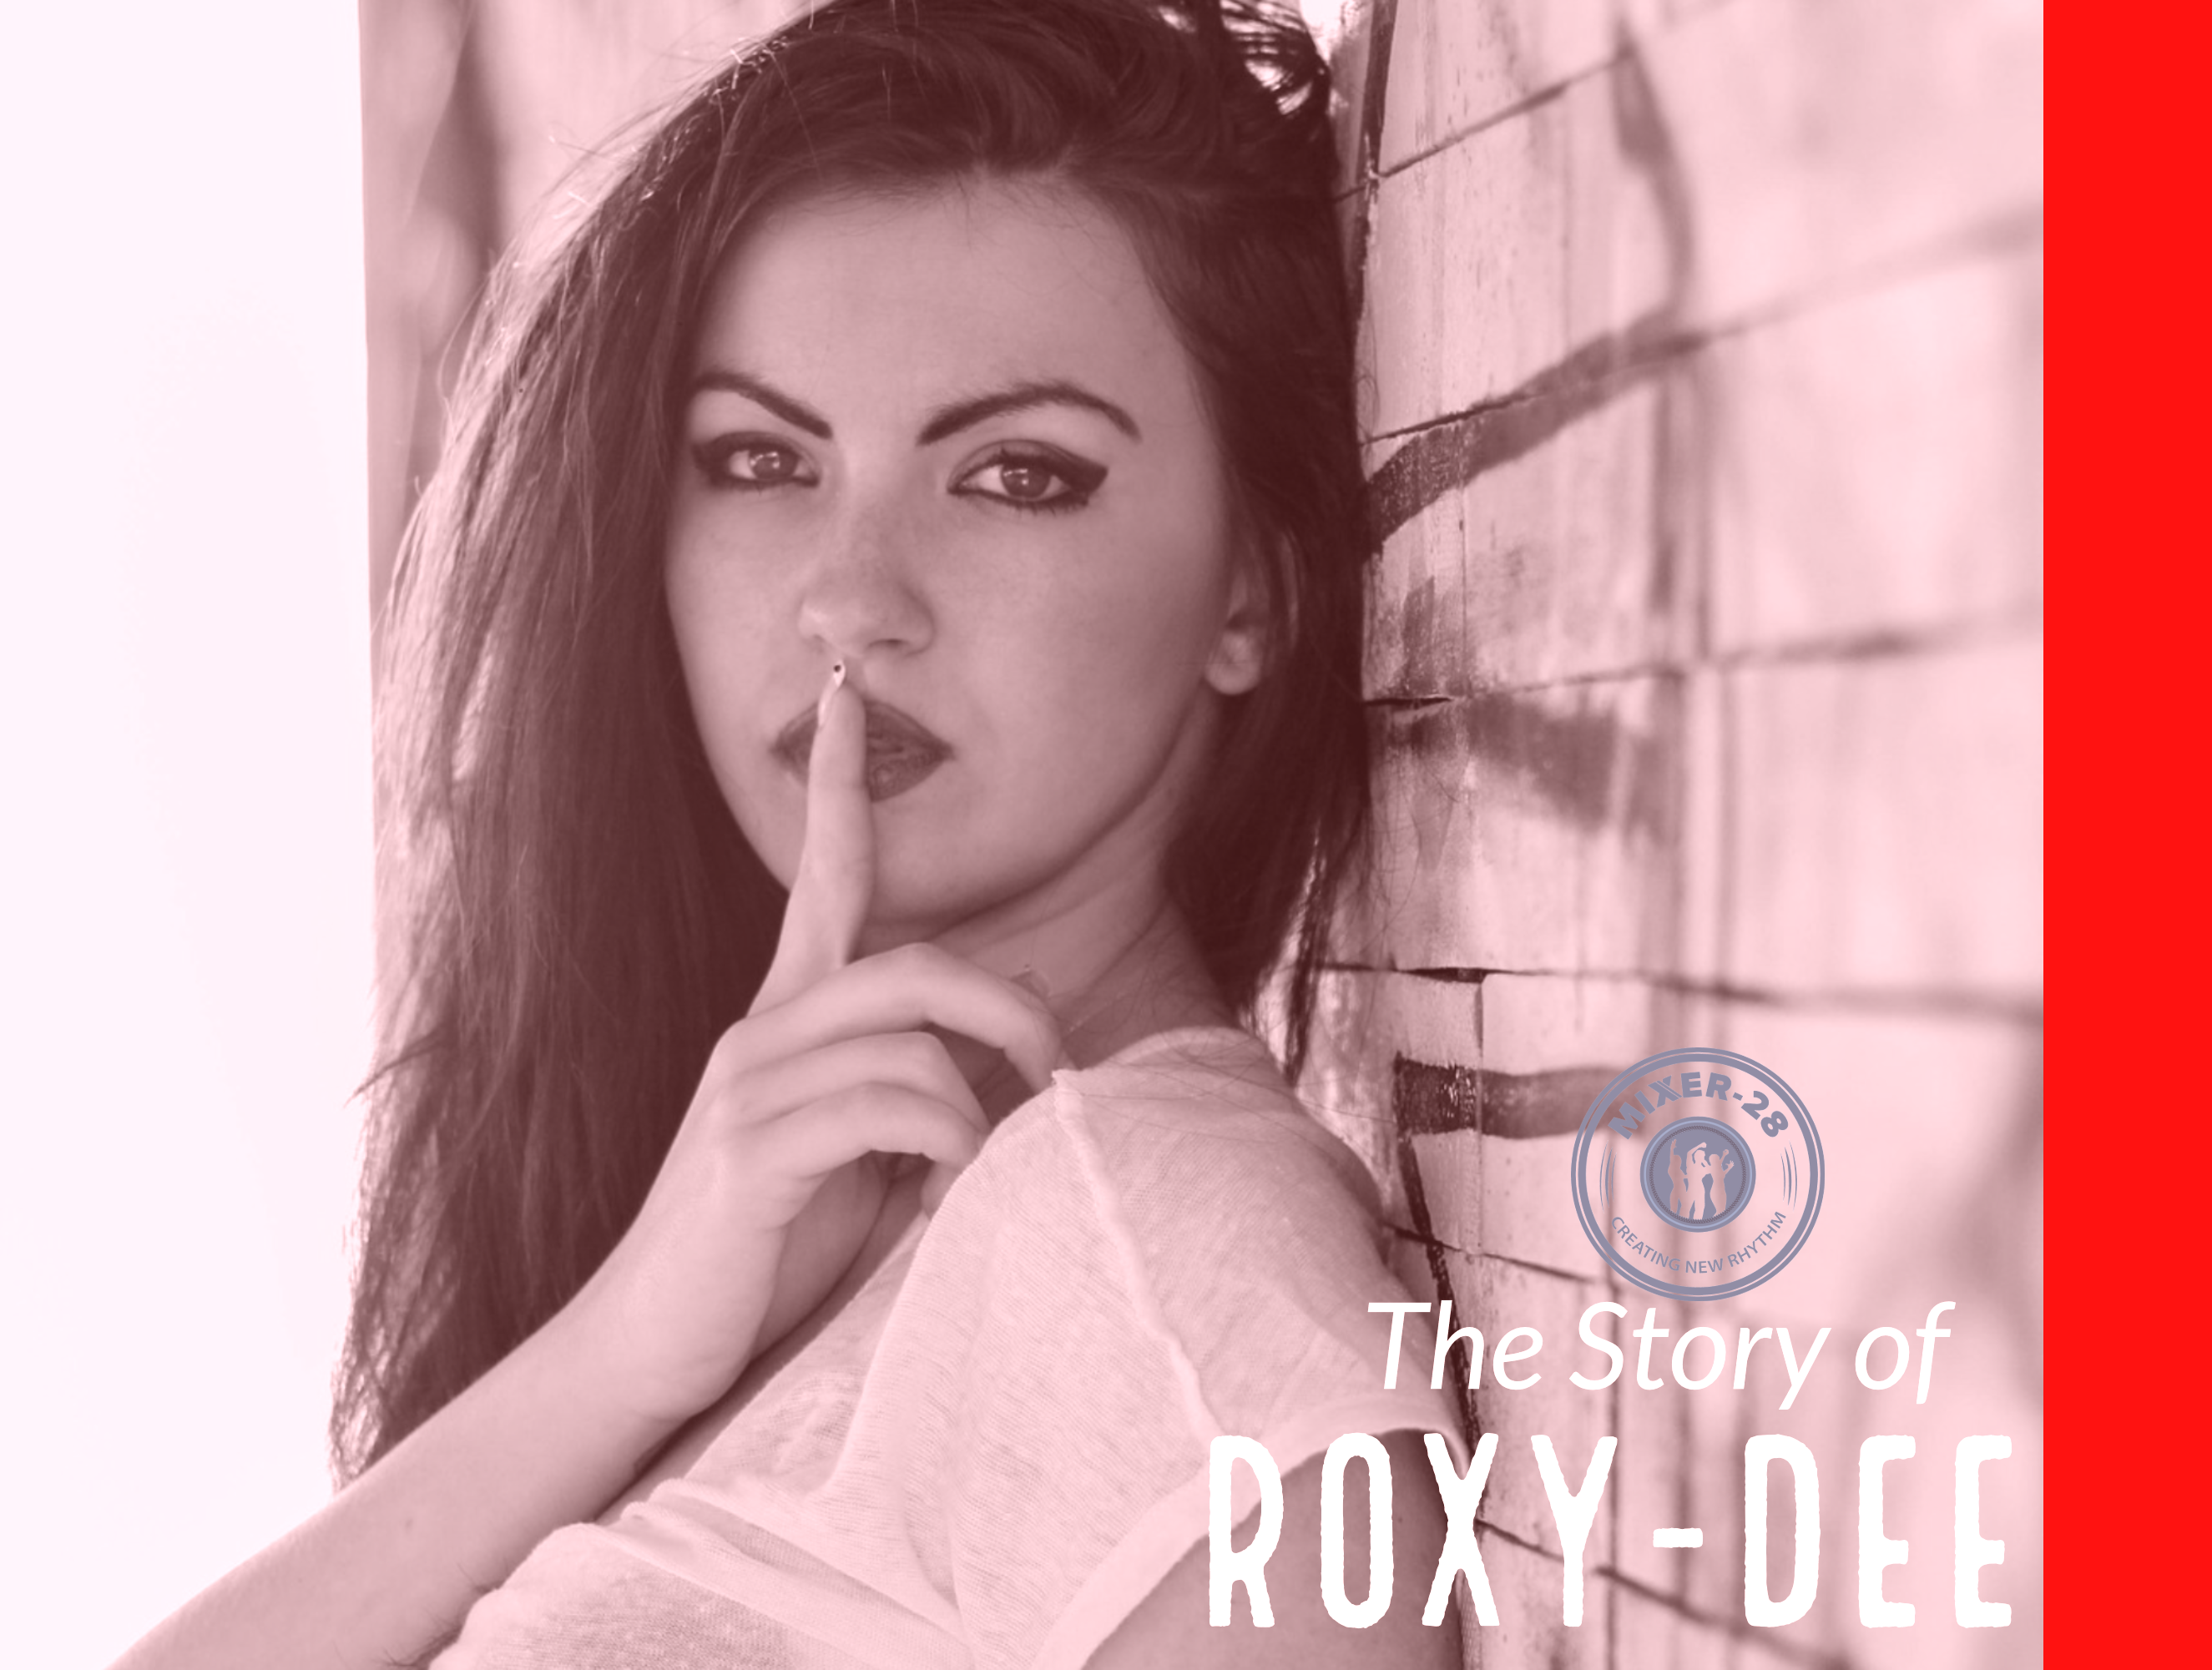 THE STORY OF ROXY-DEE